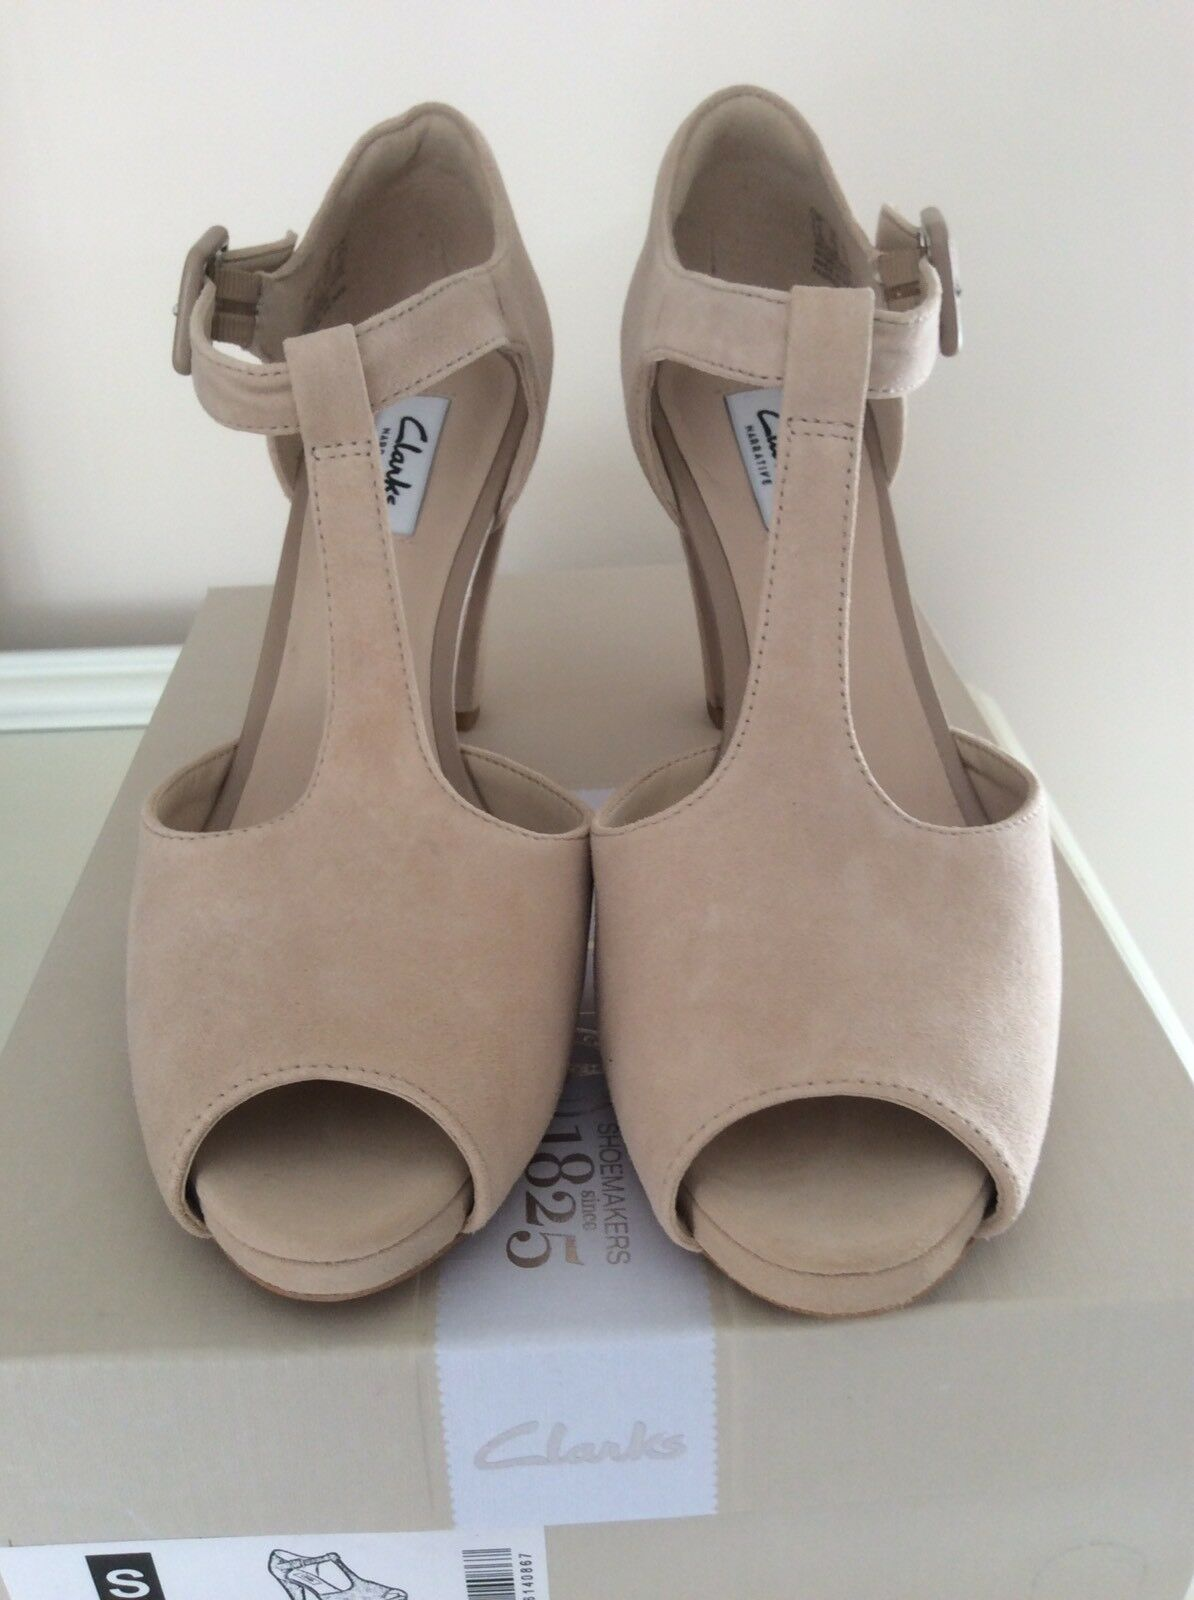 Clarks Natural Suede Kendra Flower Sandals Size 6 New